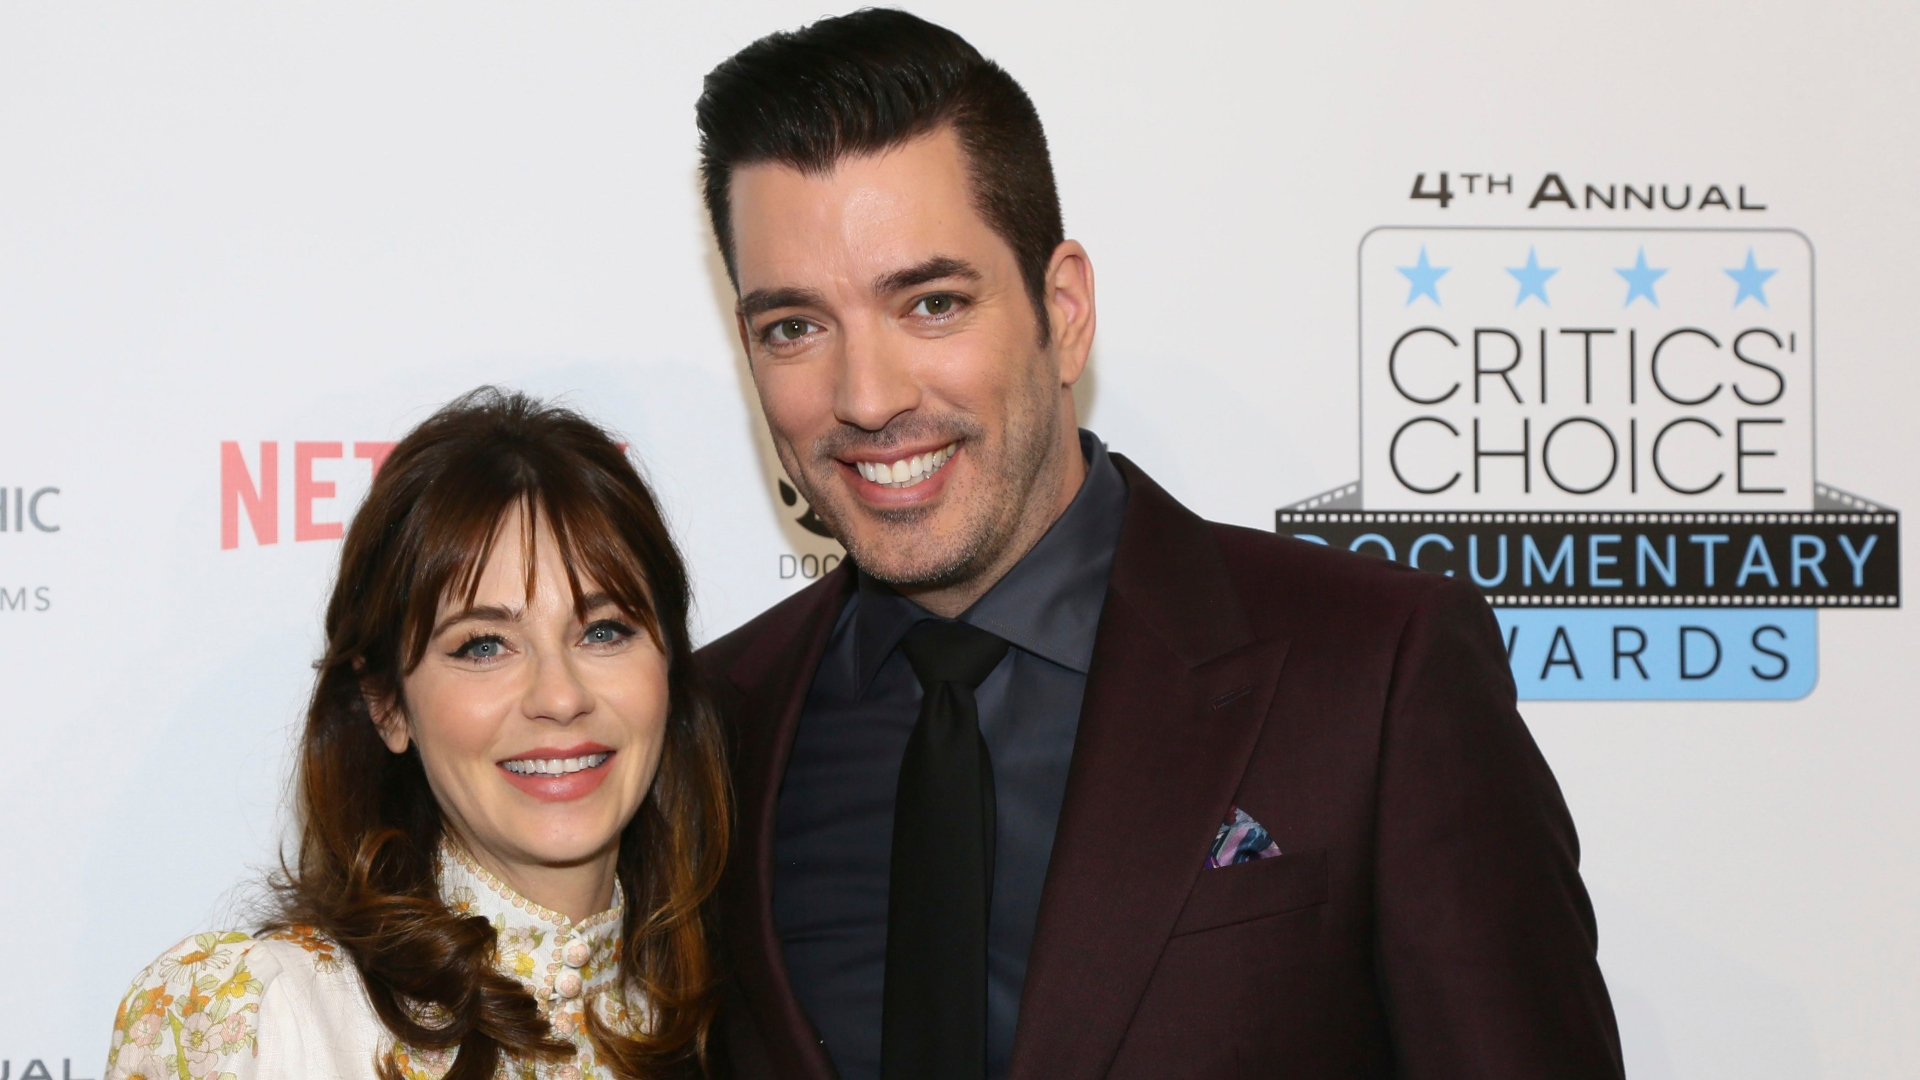 About relation between Jonathan Scott and Zooey